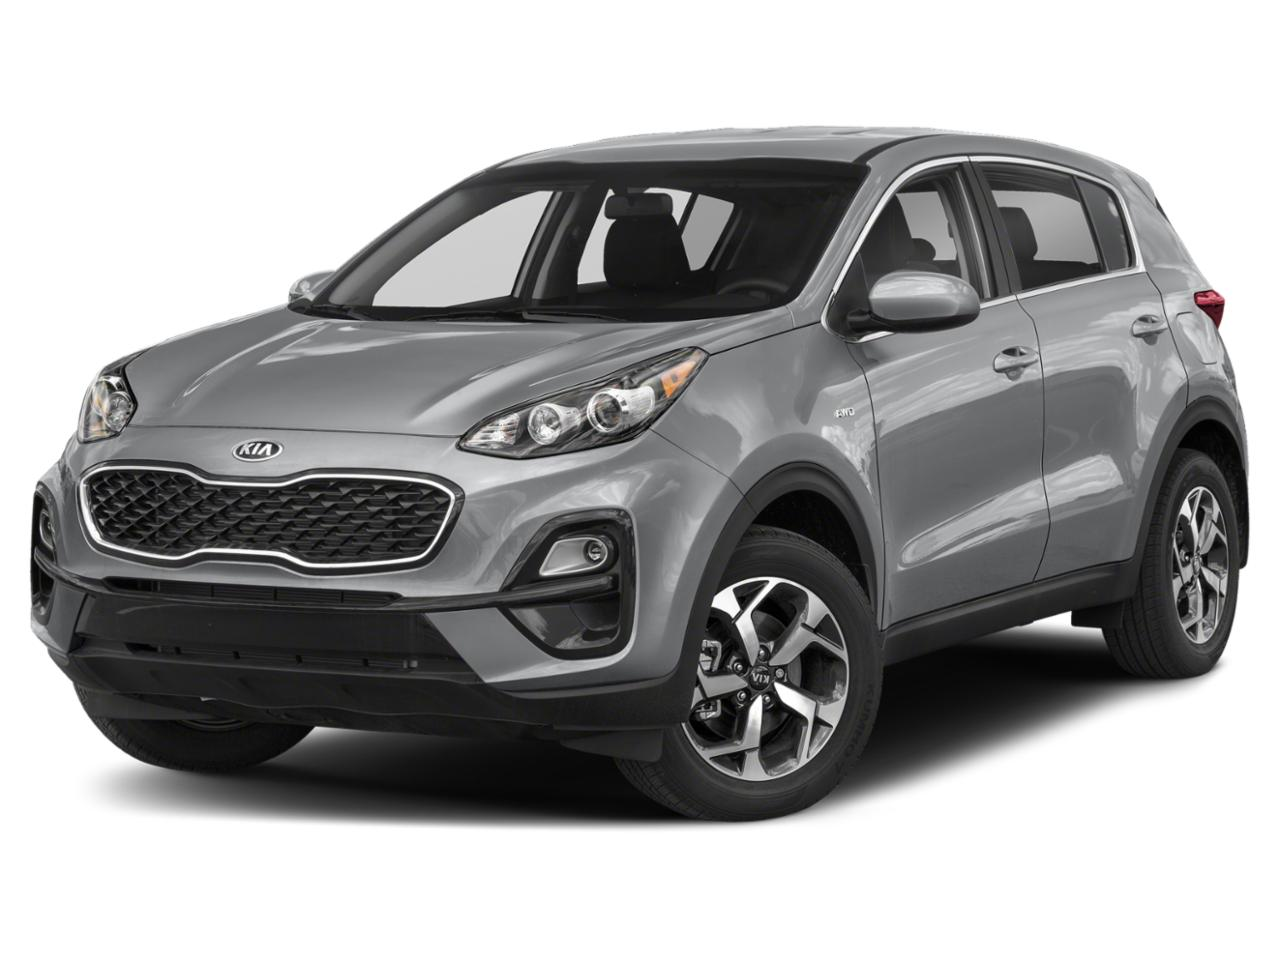 2022 Kia Sportage Vehicle Photo in Appleton, WI 54914